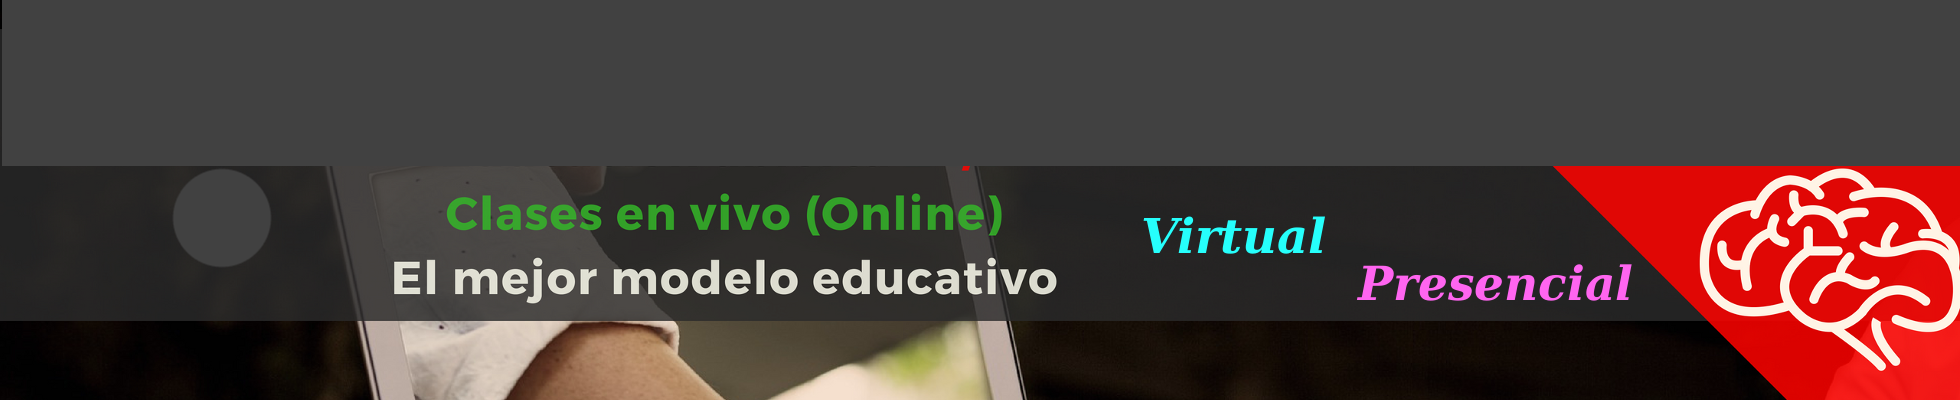 Cursos online en vivo virtual